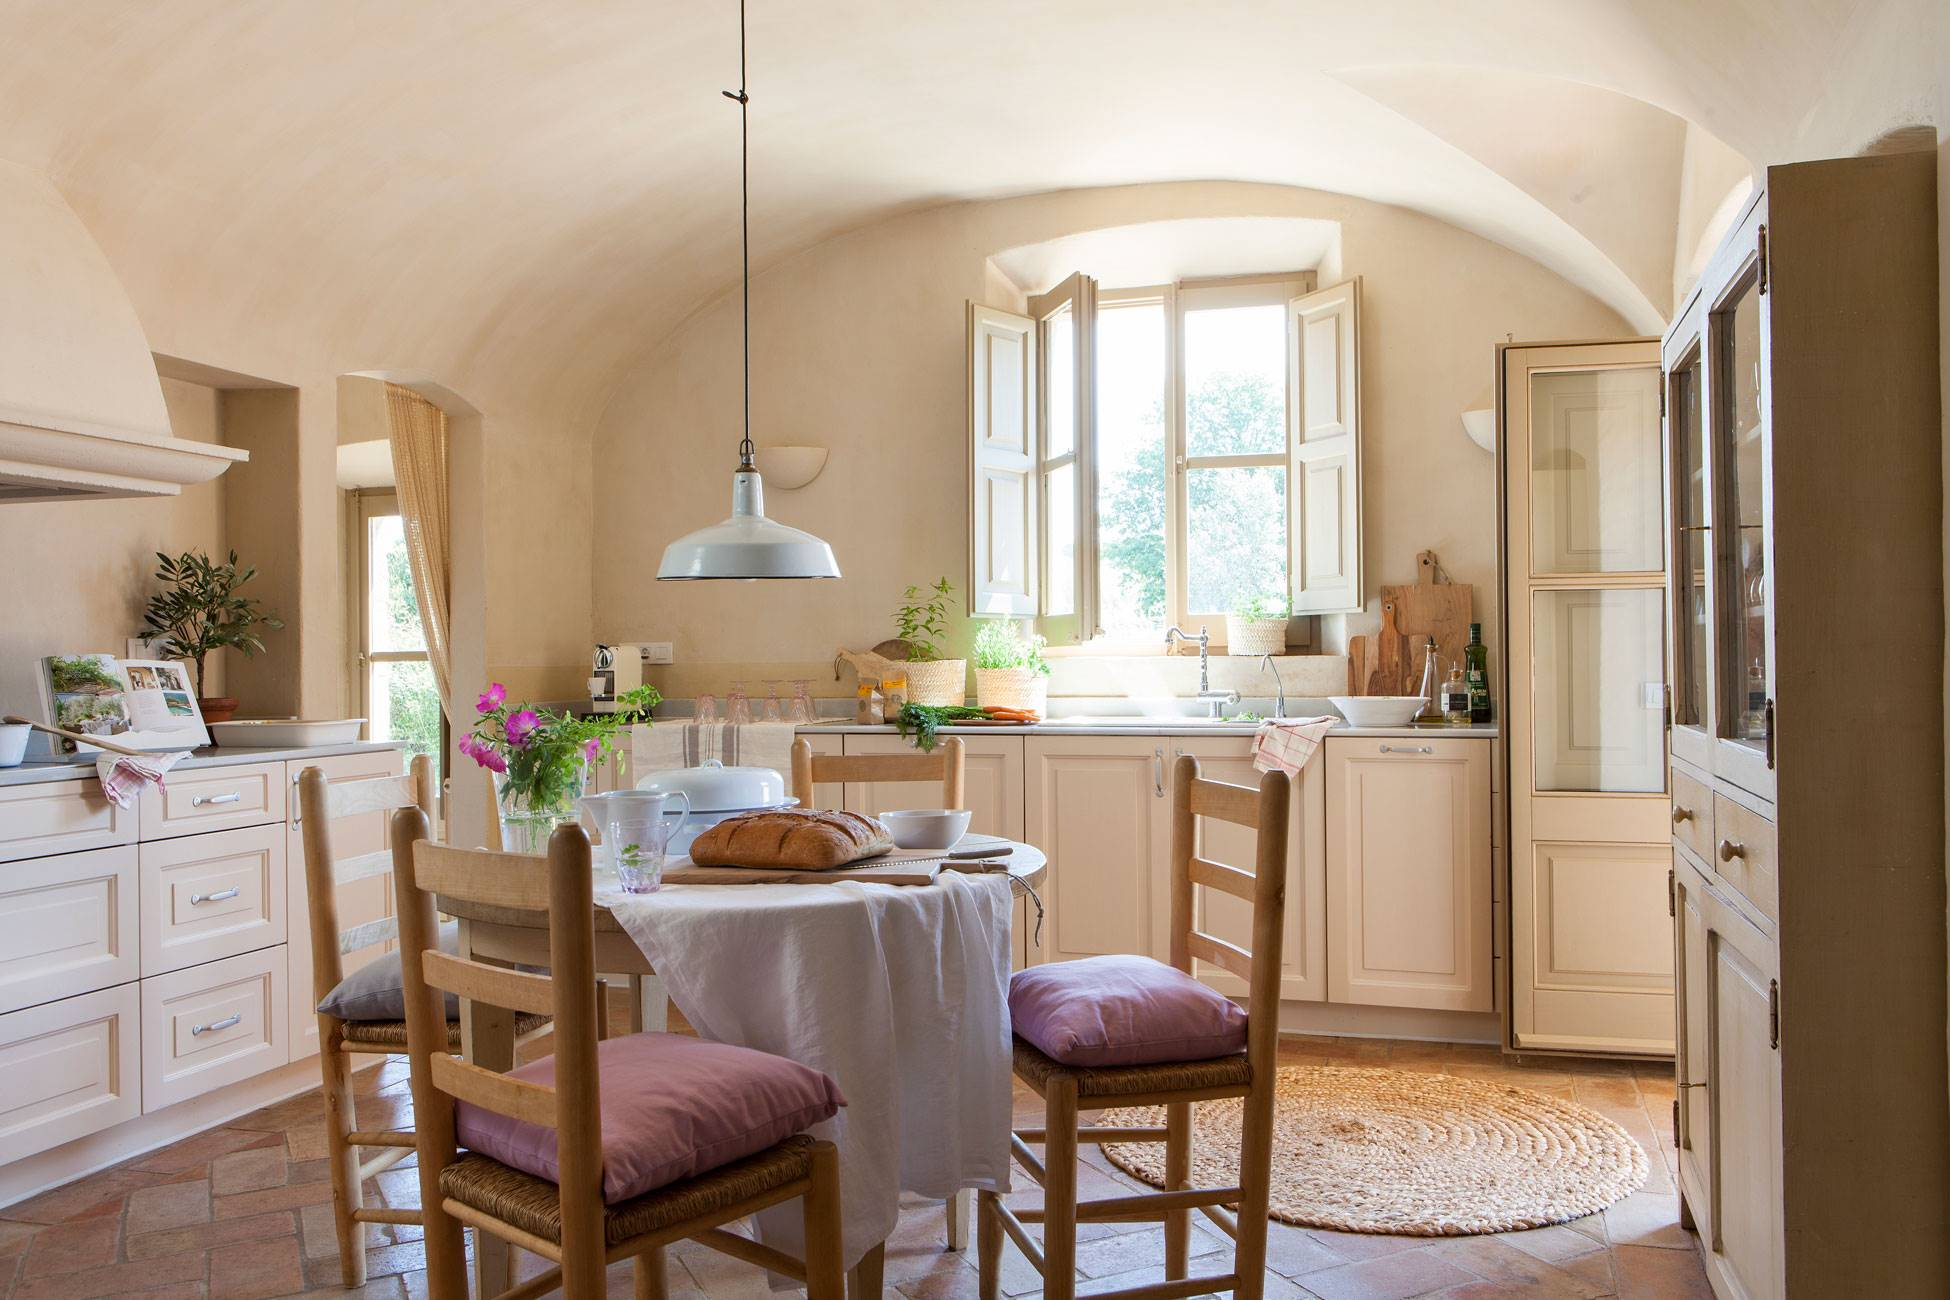 country-style-kitchen-with-floor-tova-and-round-table-in-the-center 433909 O. Today and yesterday